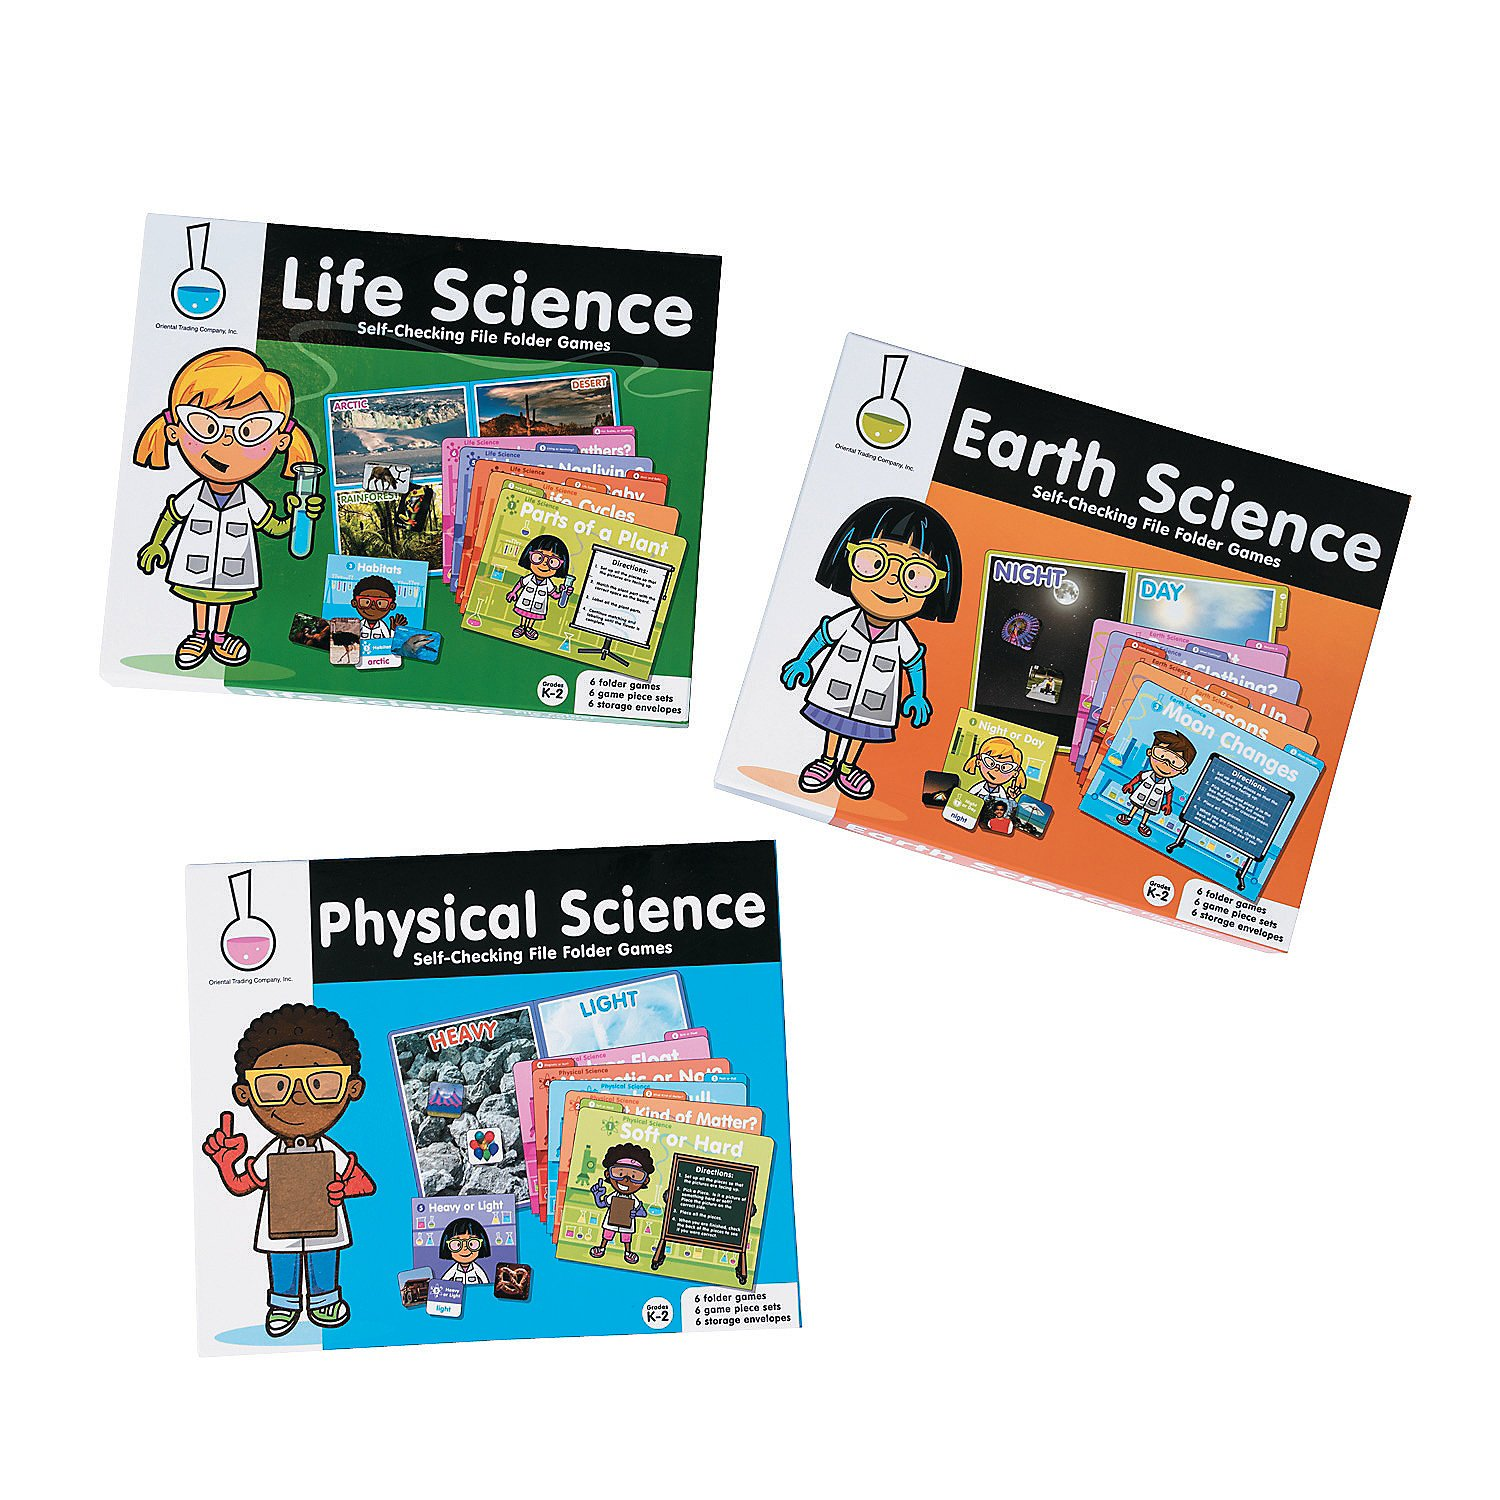 Fun Express - Science File Folder Games - Buy All - Educational - Teaching Aids - Science - 3 Pieces by Fun Express